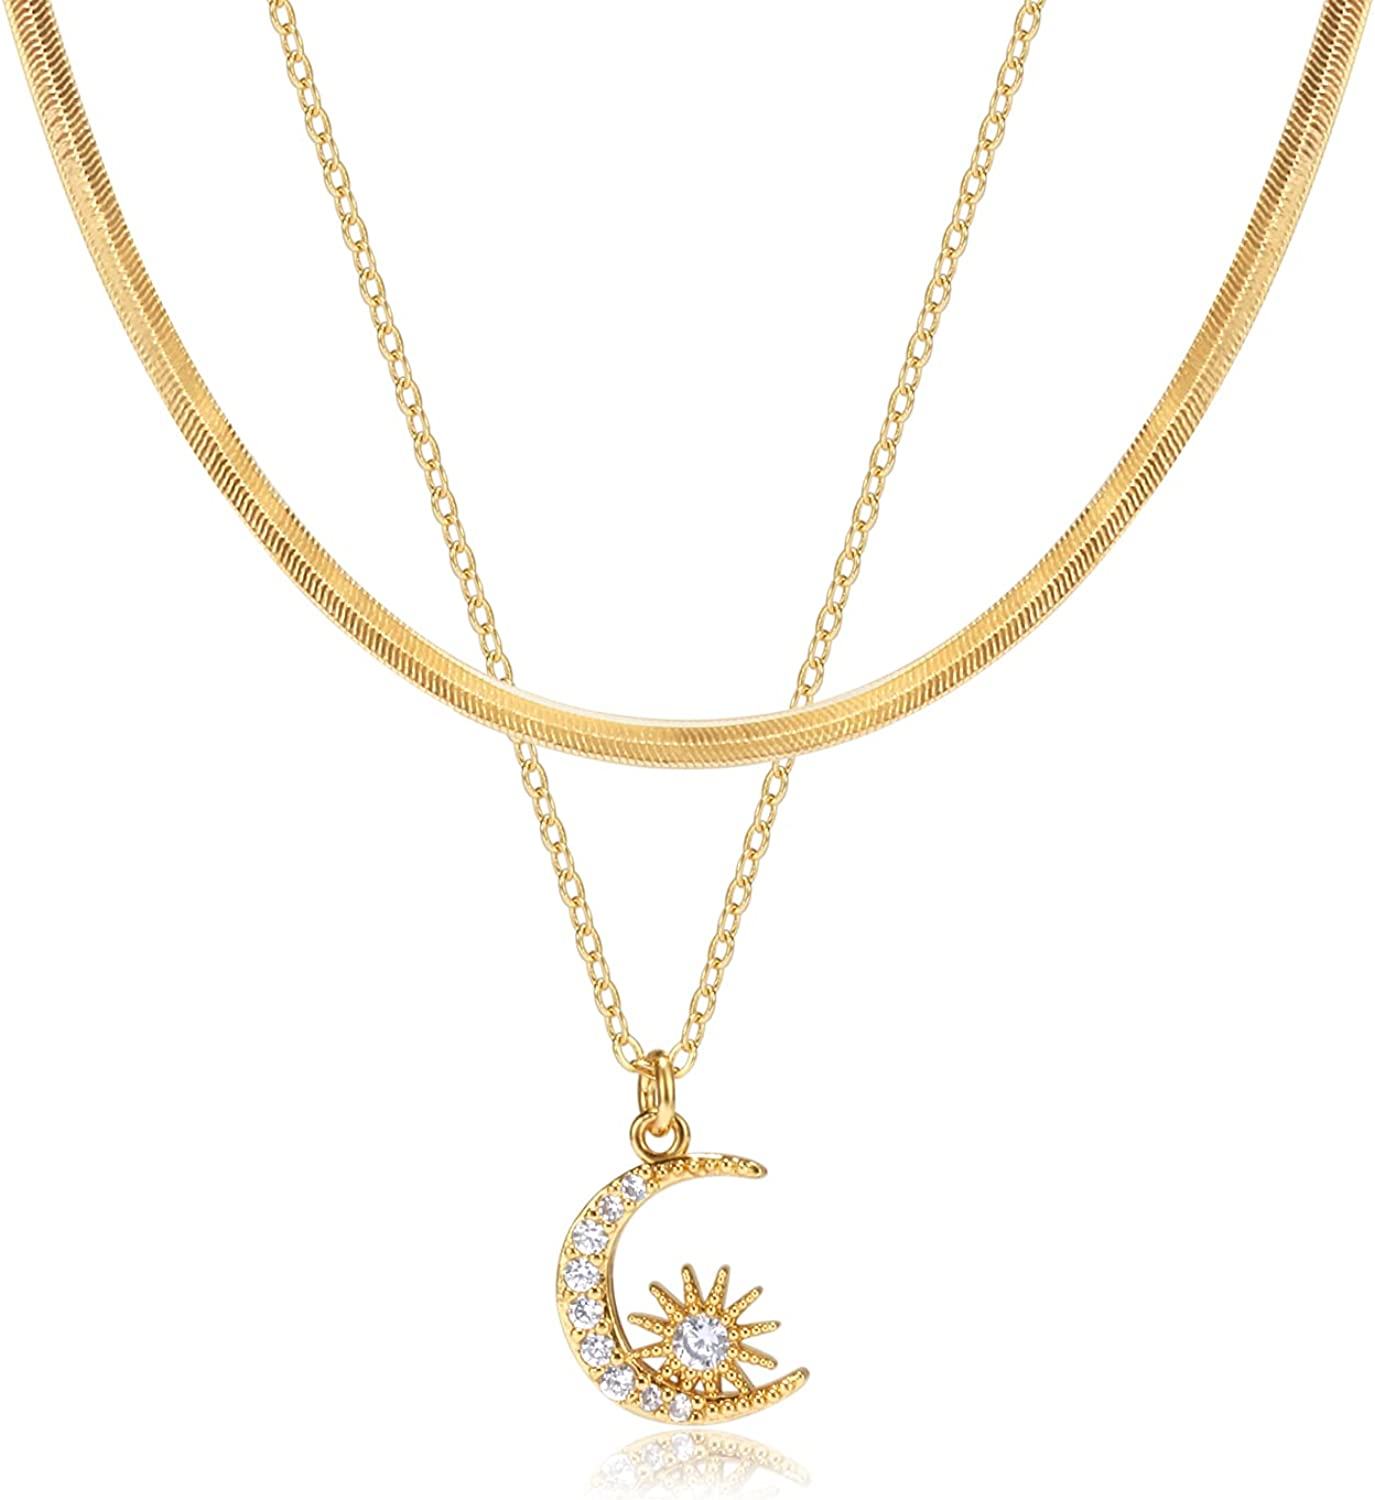 Gold Initial Necklaces for Women Girls, 14K Gold Plated Dainty Layering Snake Bone Choker Link Chain Necklace Personalized Sun Moon and Star Initial Layered Gold Necklaces for Women